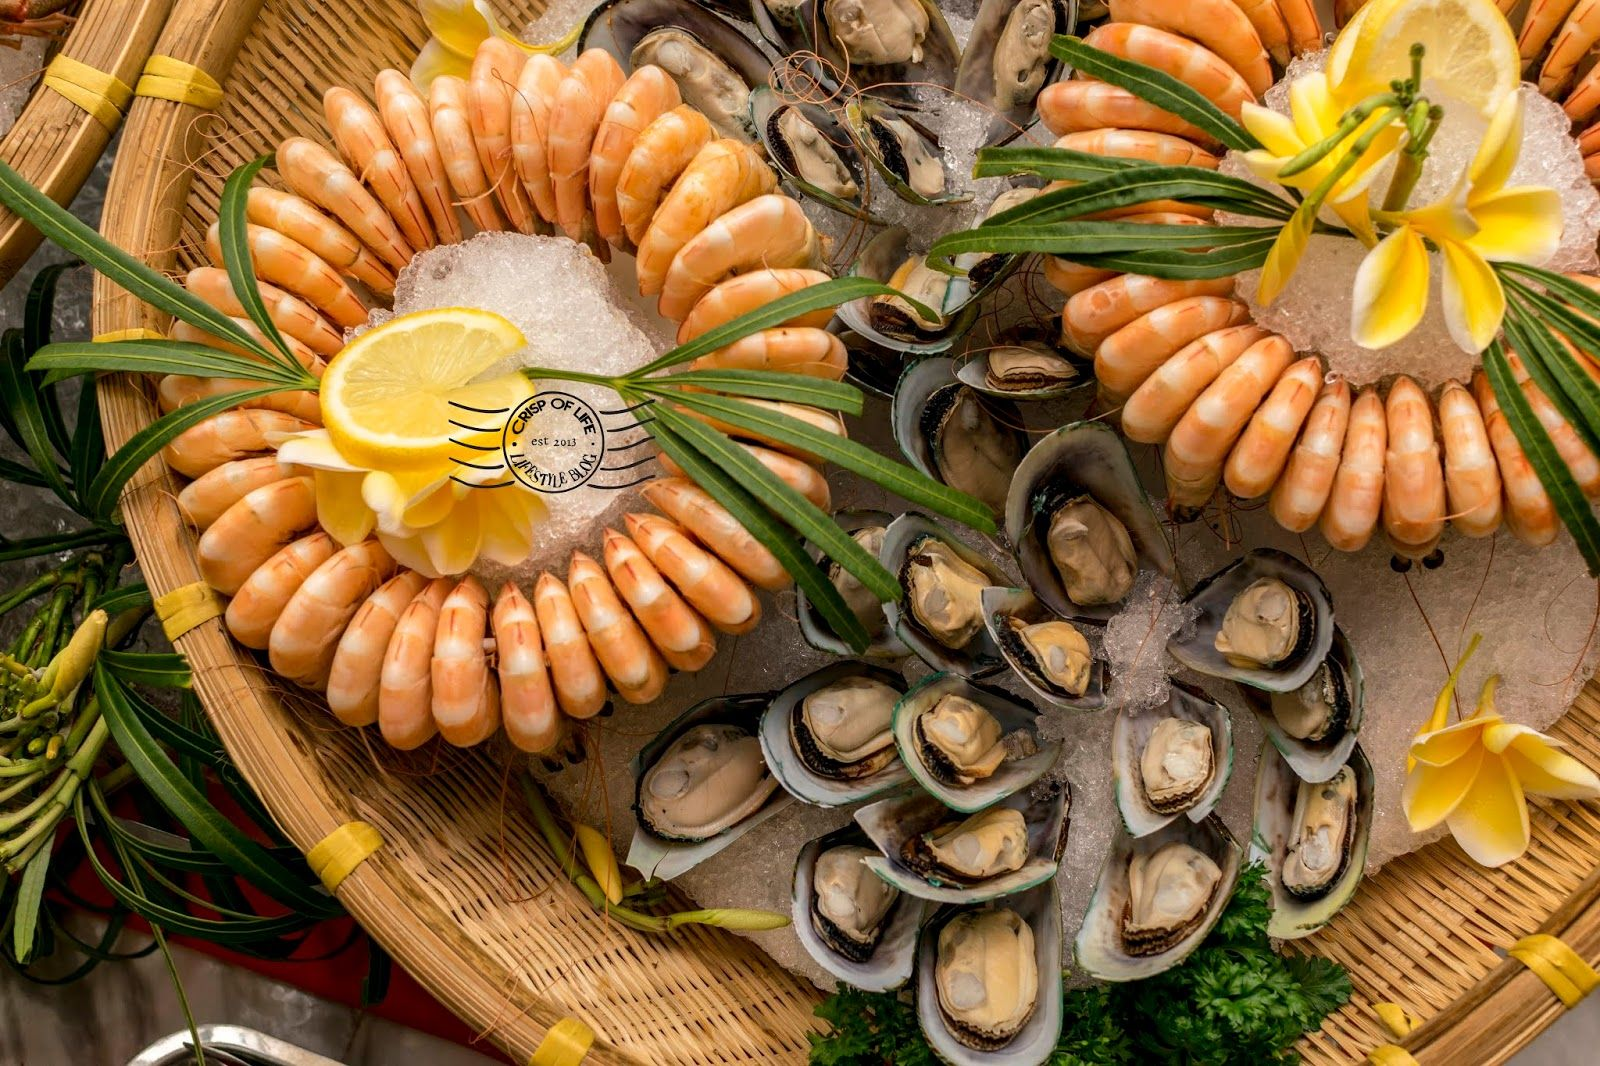 Hot Wok Seafood Buffet Dinner Lexis Suites Penang In 2020 Seafood Buffet Seafood Buffet